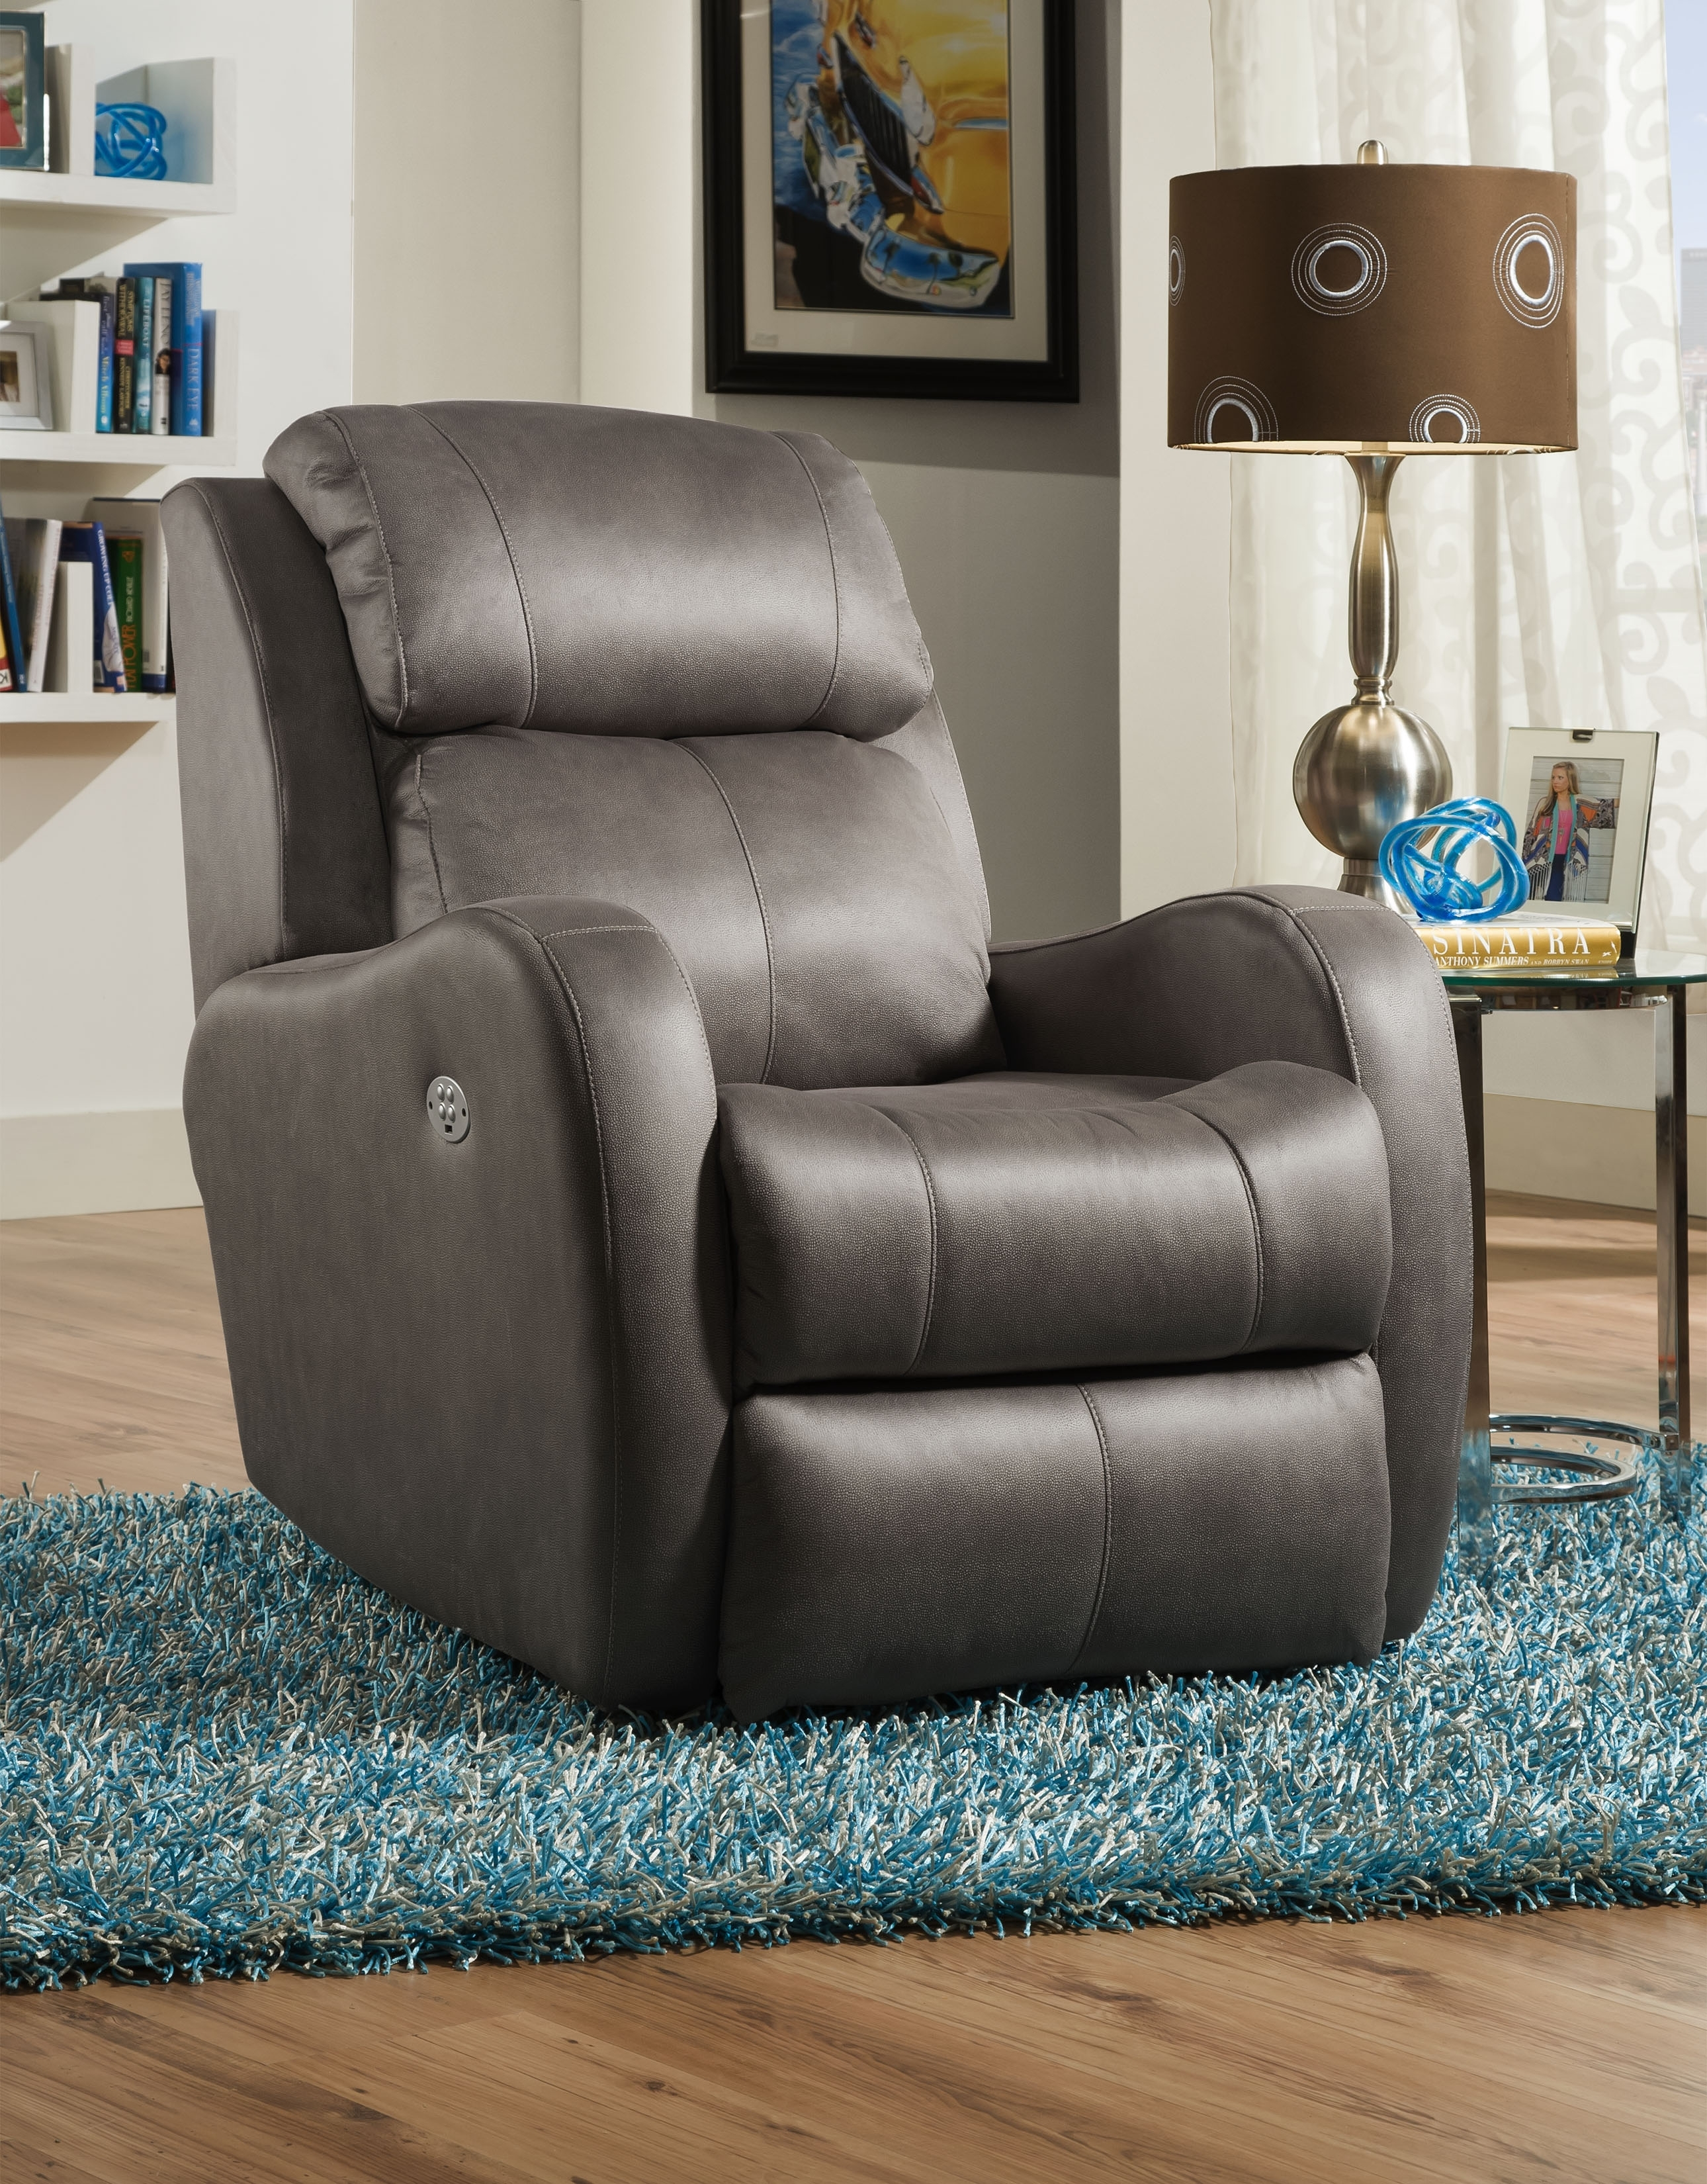 Motion Furniture Products – Recliner Chairs, Sofas And More Within Travis Cognac Leather 6 Piece Power Reclining Sectionals With Power Headrest & Usb (Image 21 of 25)